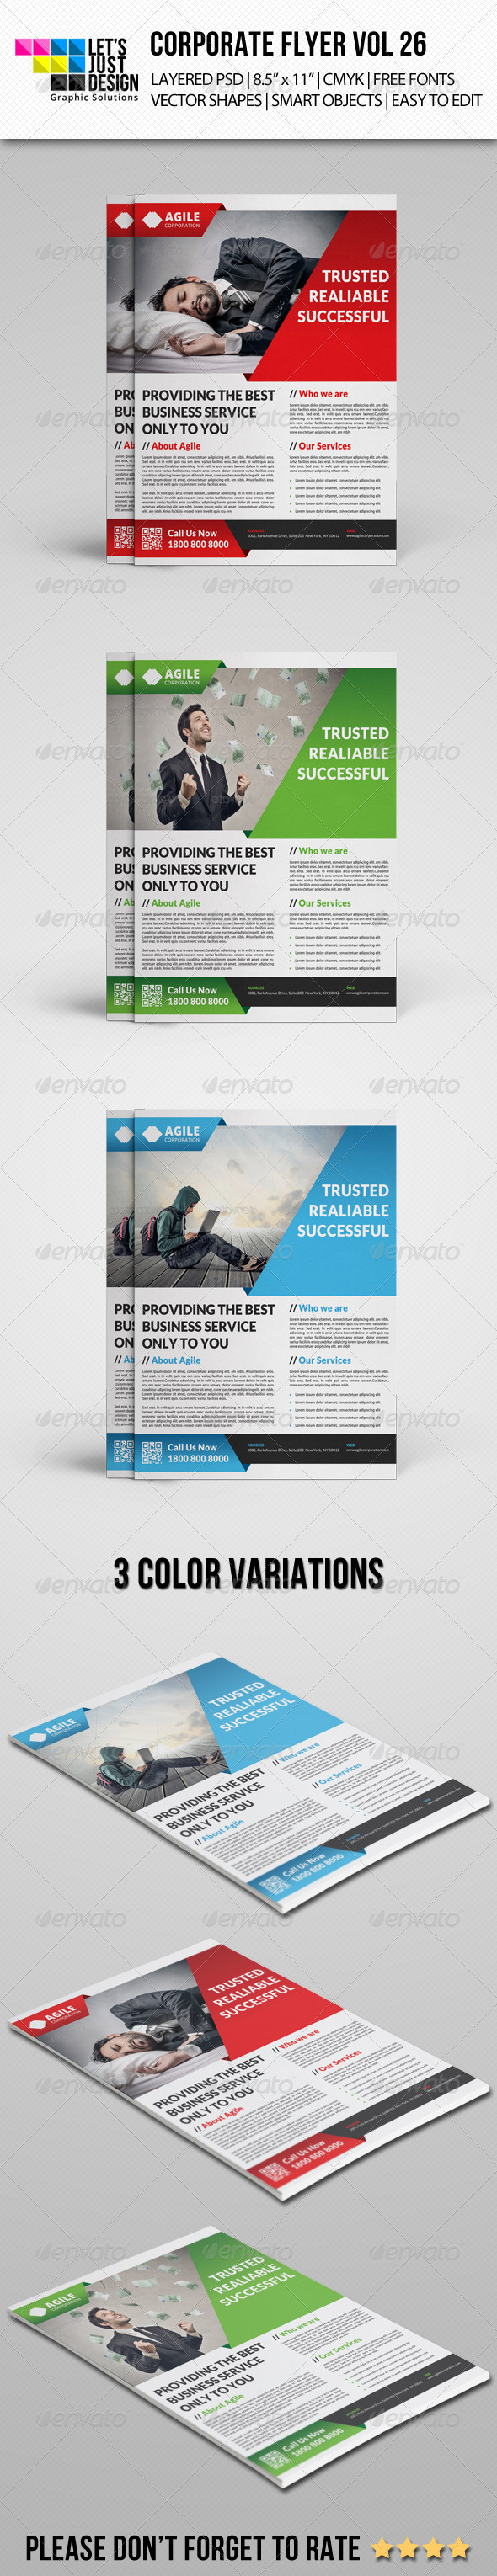 Corporate Flyer Template Vol 26